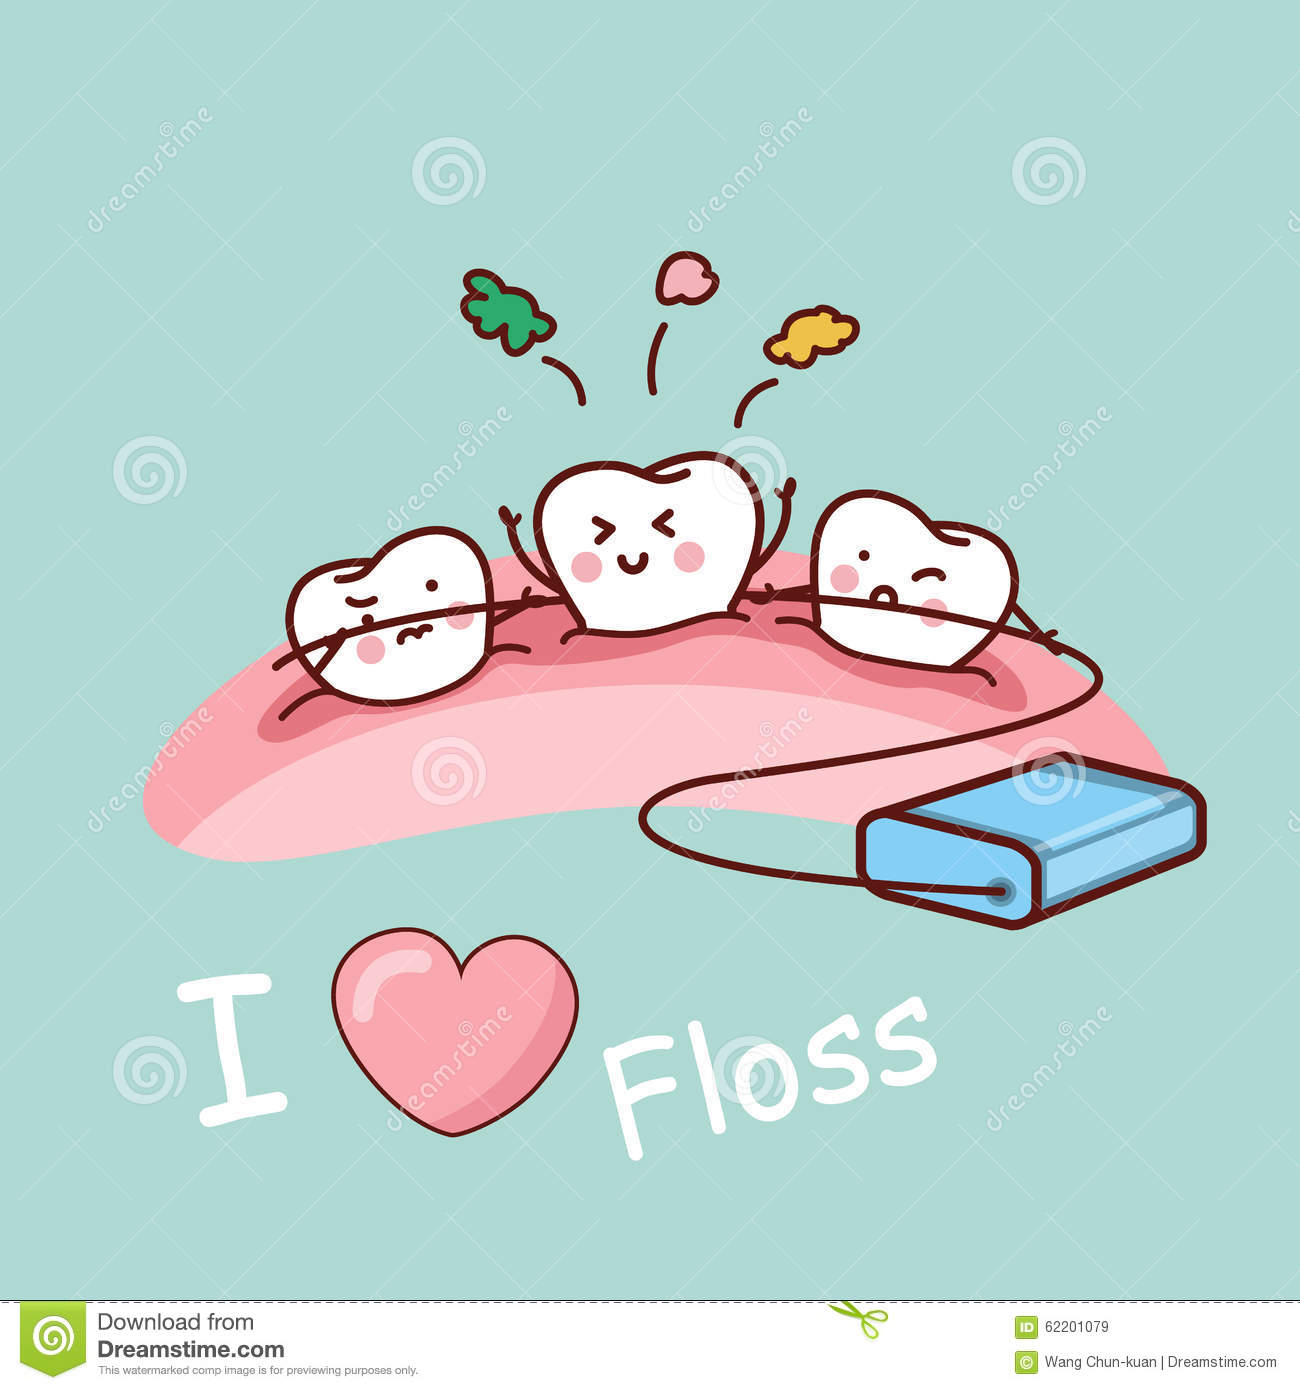 cartoon-tooth-dental-floss-great-health-care-concept-62201079.jpg